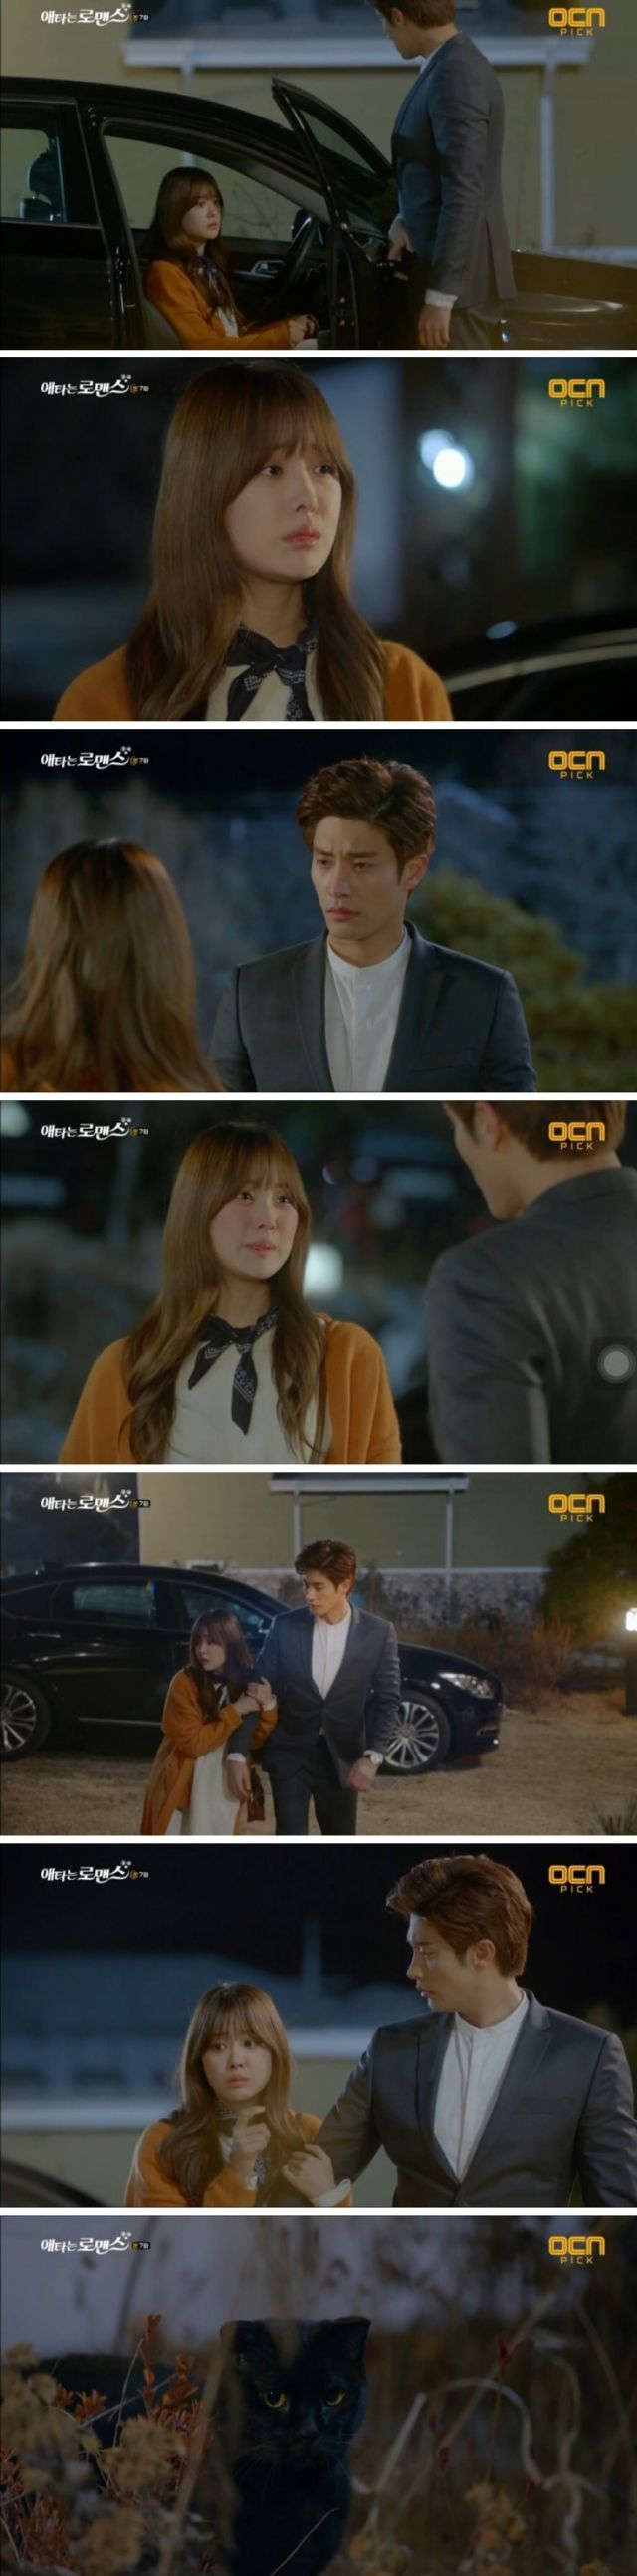 [Spoiler] Added episode 7 captures for the Korean drama 'My Secret Romance'